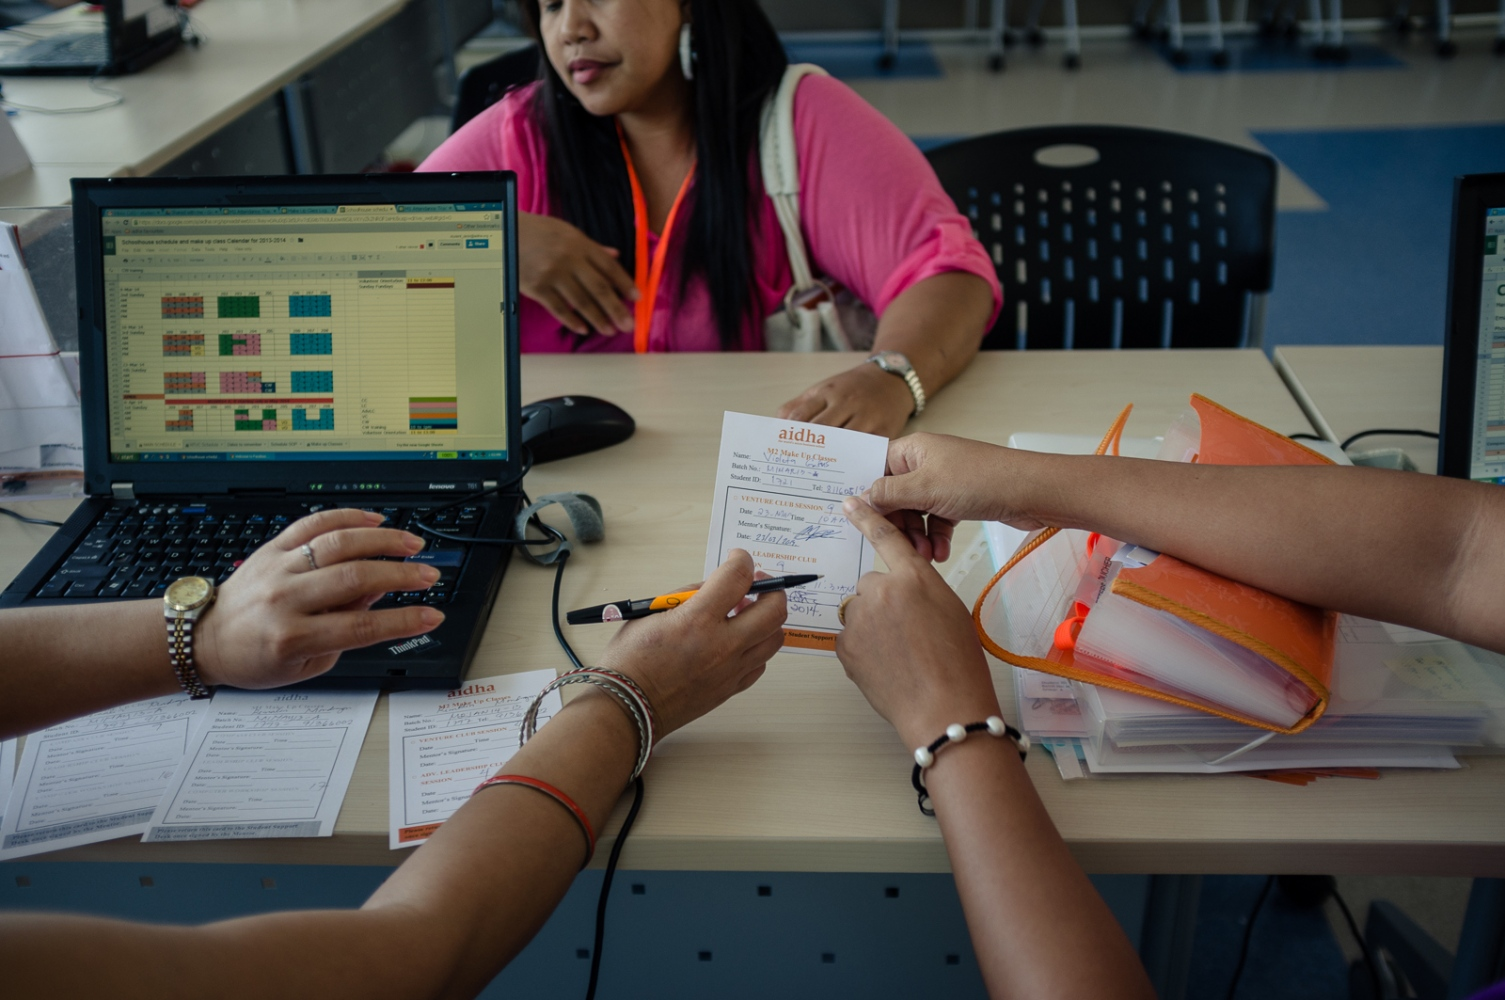 Foreign domestic workers in a school classroom which serves as a temporary office for 'Aidha' - a business school for domestic workers in Singapore.